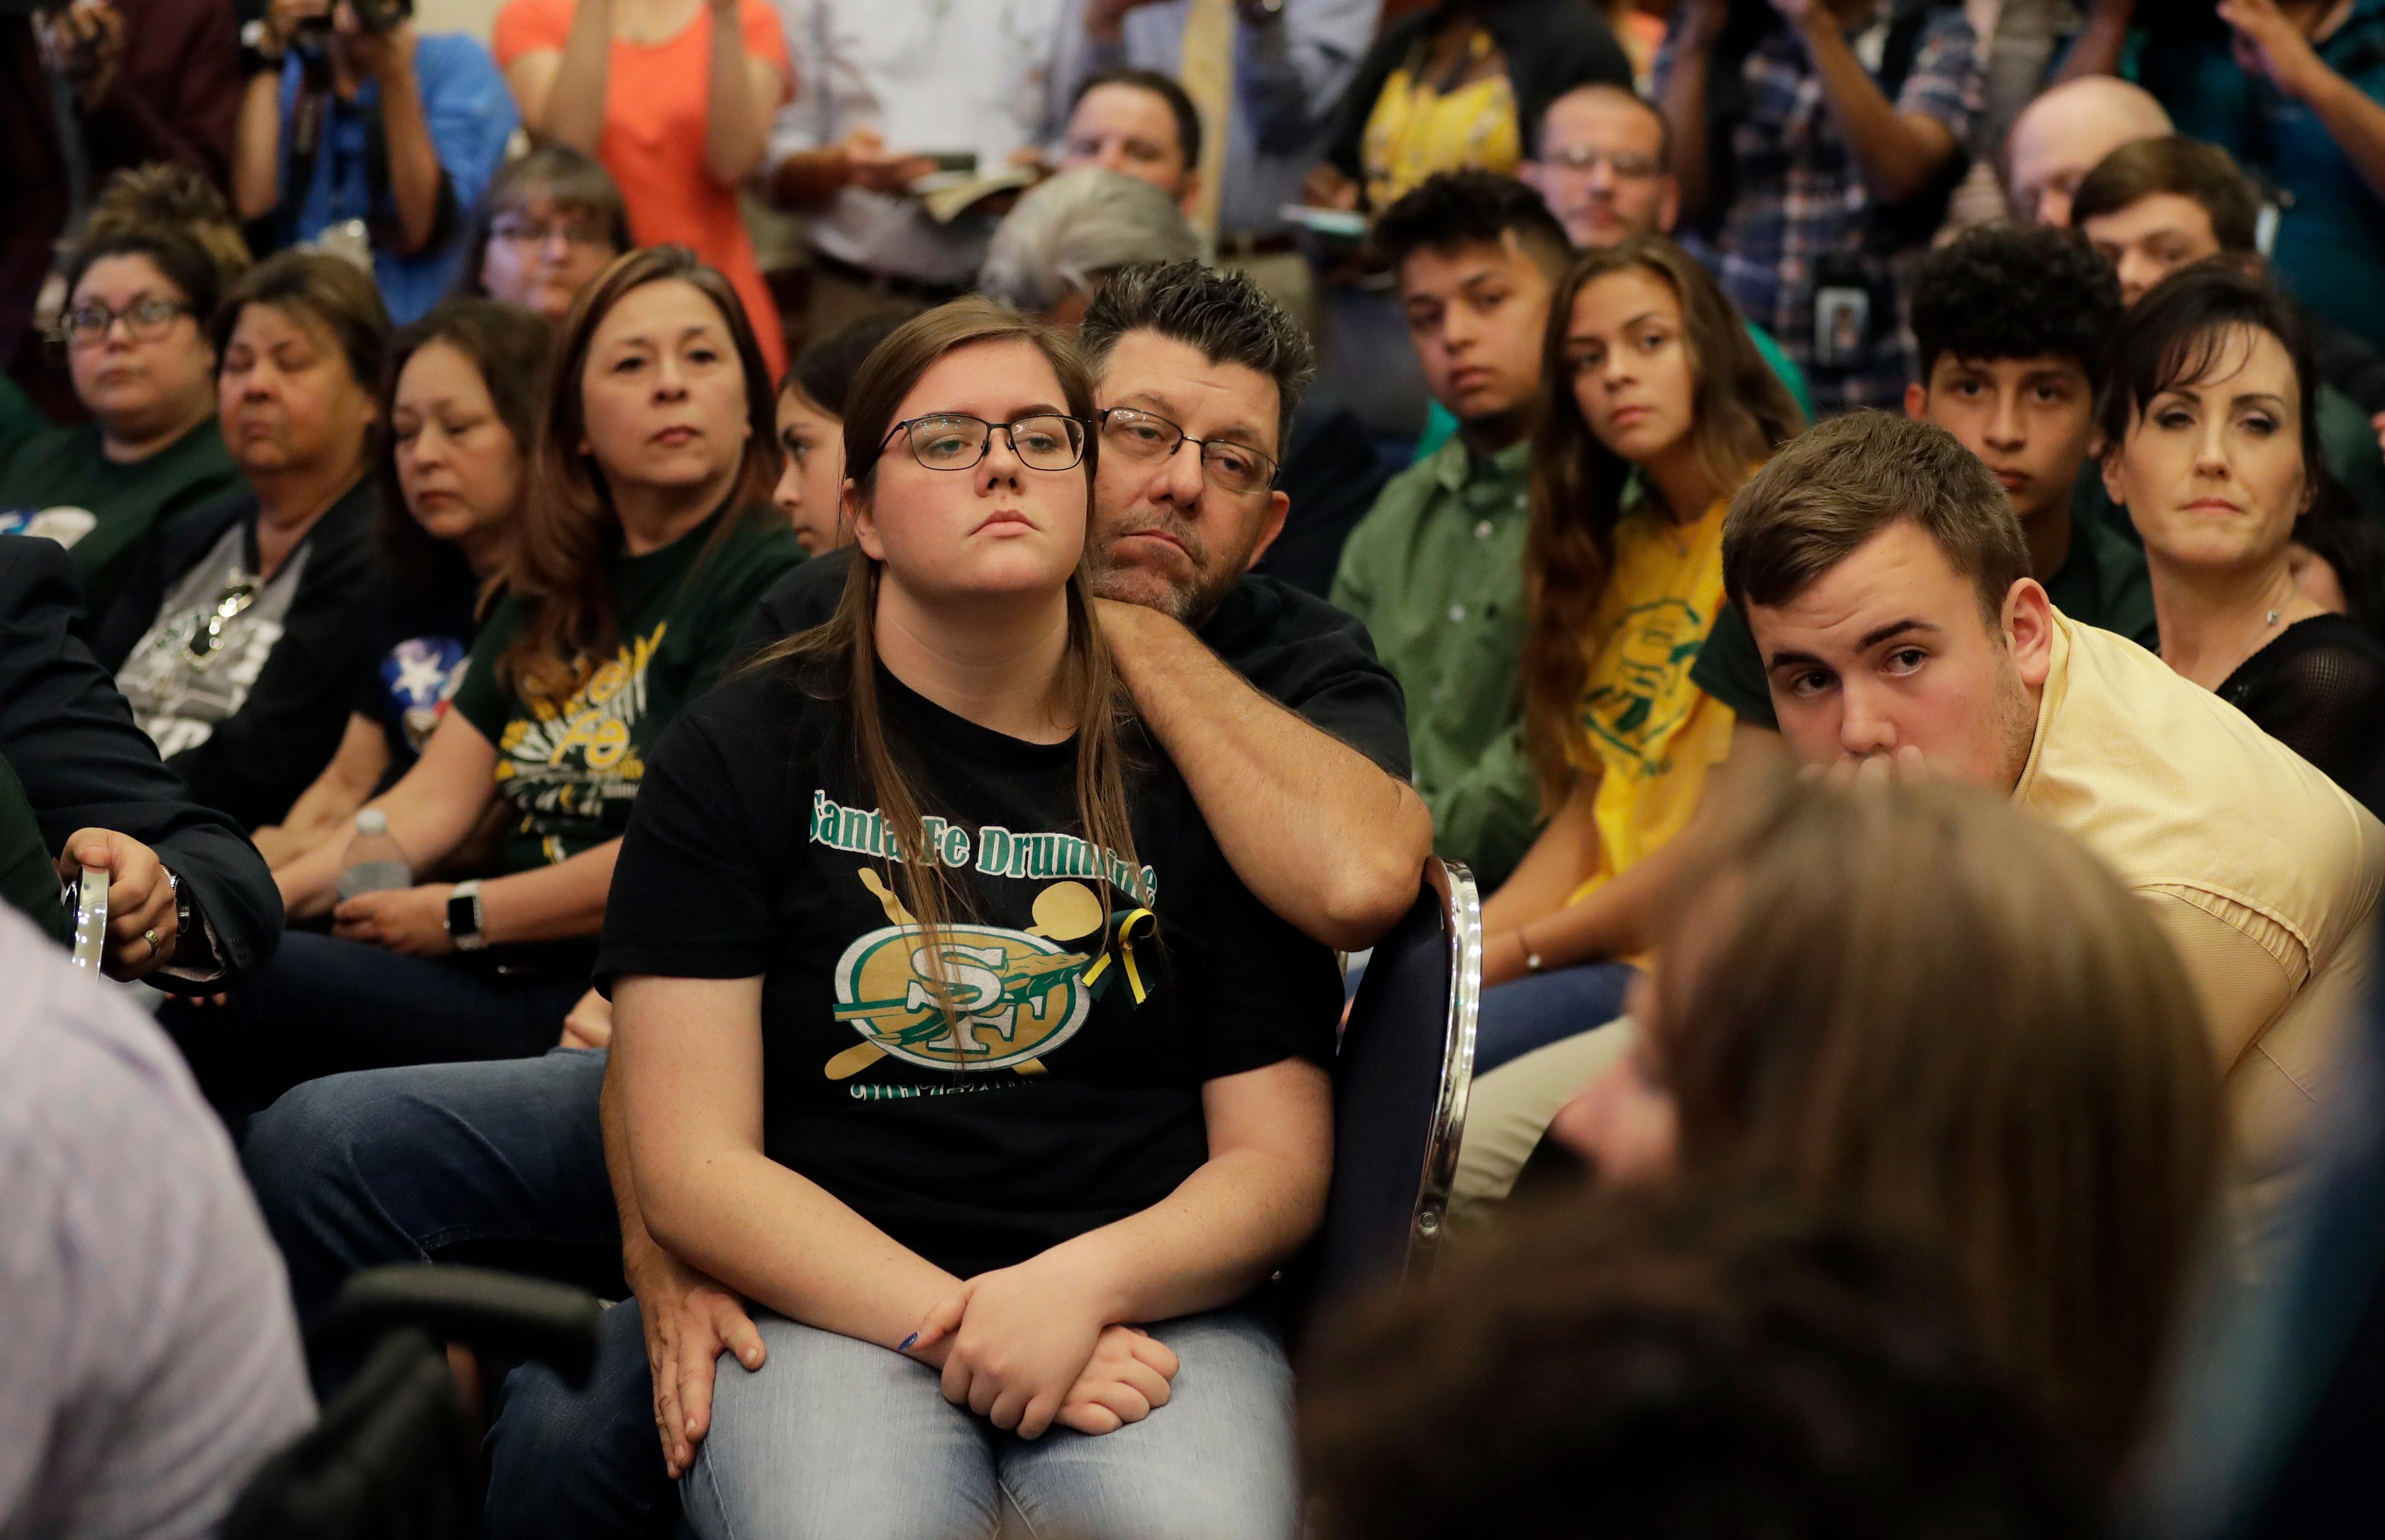 Grace Johnson, a student at Santa Fe High School, center, with her father Steve, and other students, listens during a roundtable discussion in Austin, Texas, Thursday, May 24, 2018, hosted by Texas Gov. Gregg Abbott to address safety and security at Texas schools in the wake of the shooting at Santa Fe, Texas. Thursday's roundtable included victims, students, families and educators from the Santa Fe, Alpine and Sutherland Springs communities. (AP Photo/Eric Gay)